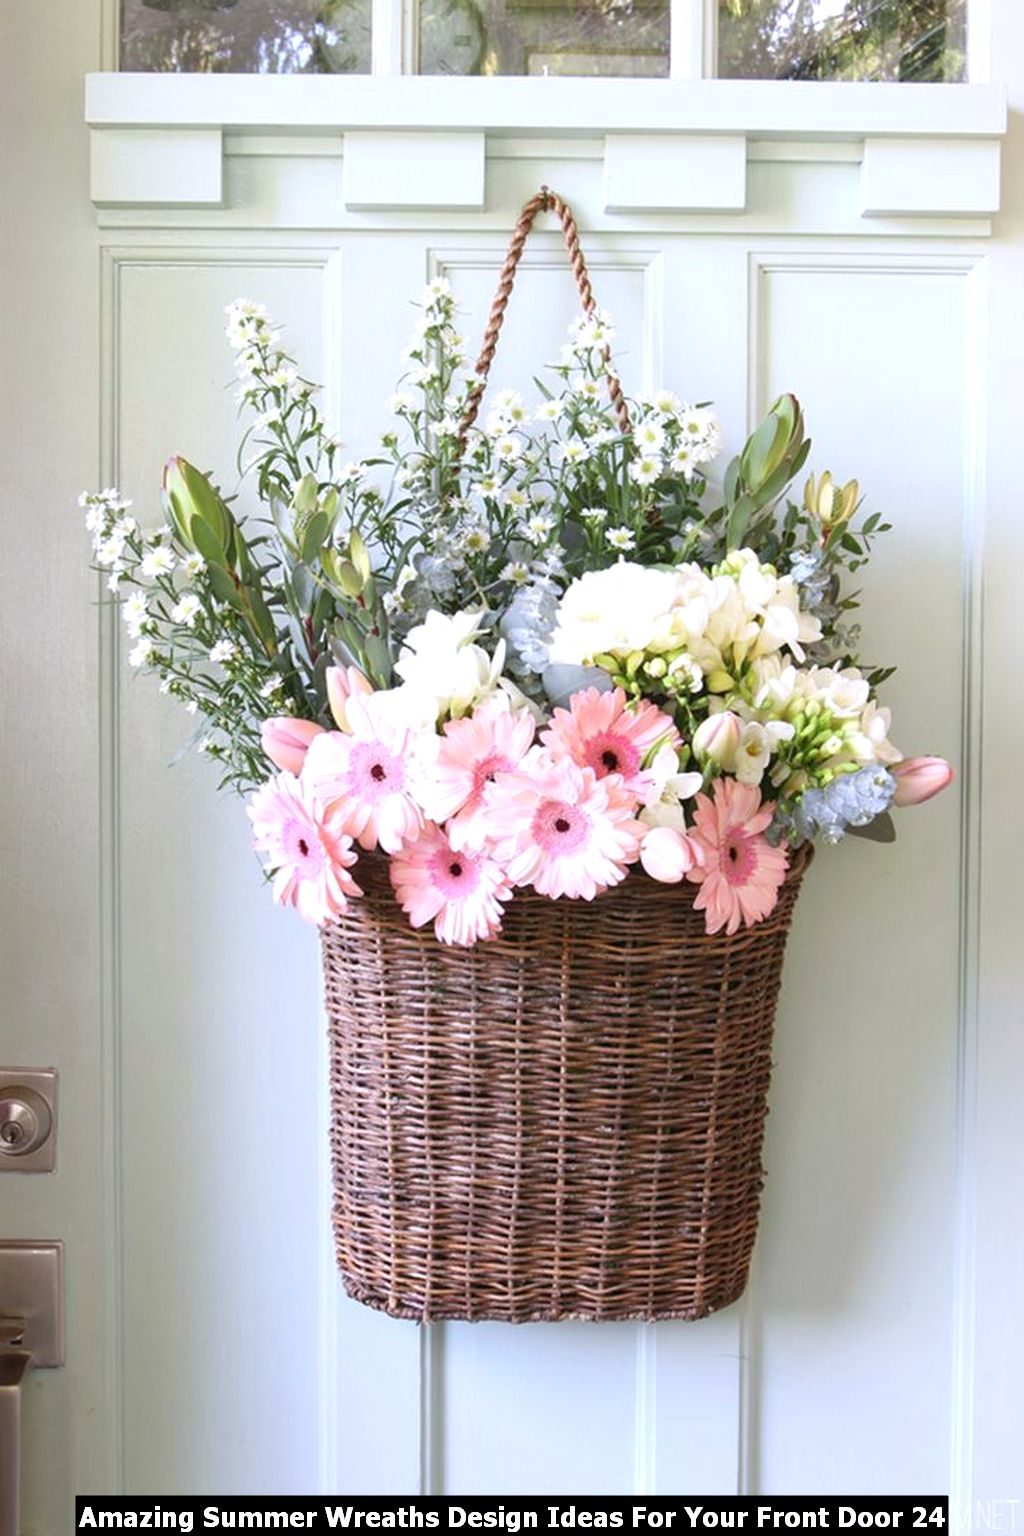 Amazing Summer Wreaths Design Ideas For Your Front Door 24